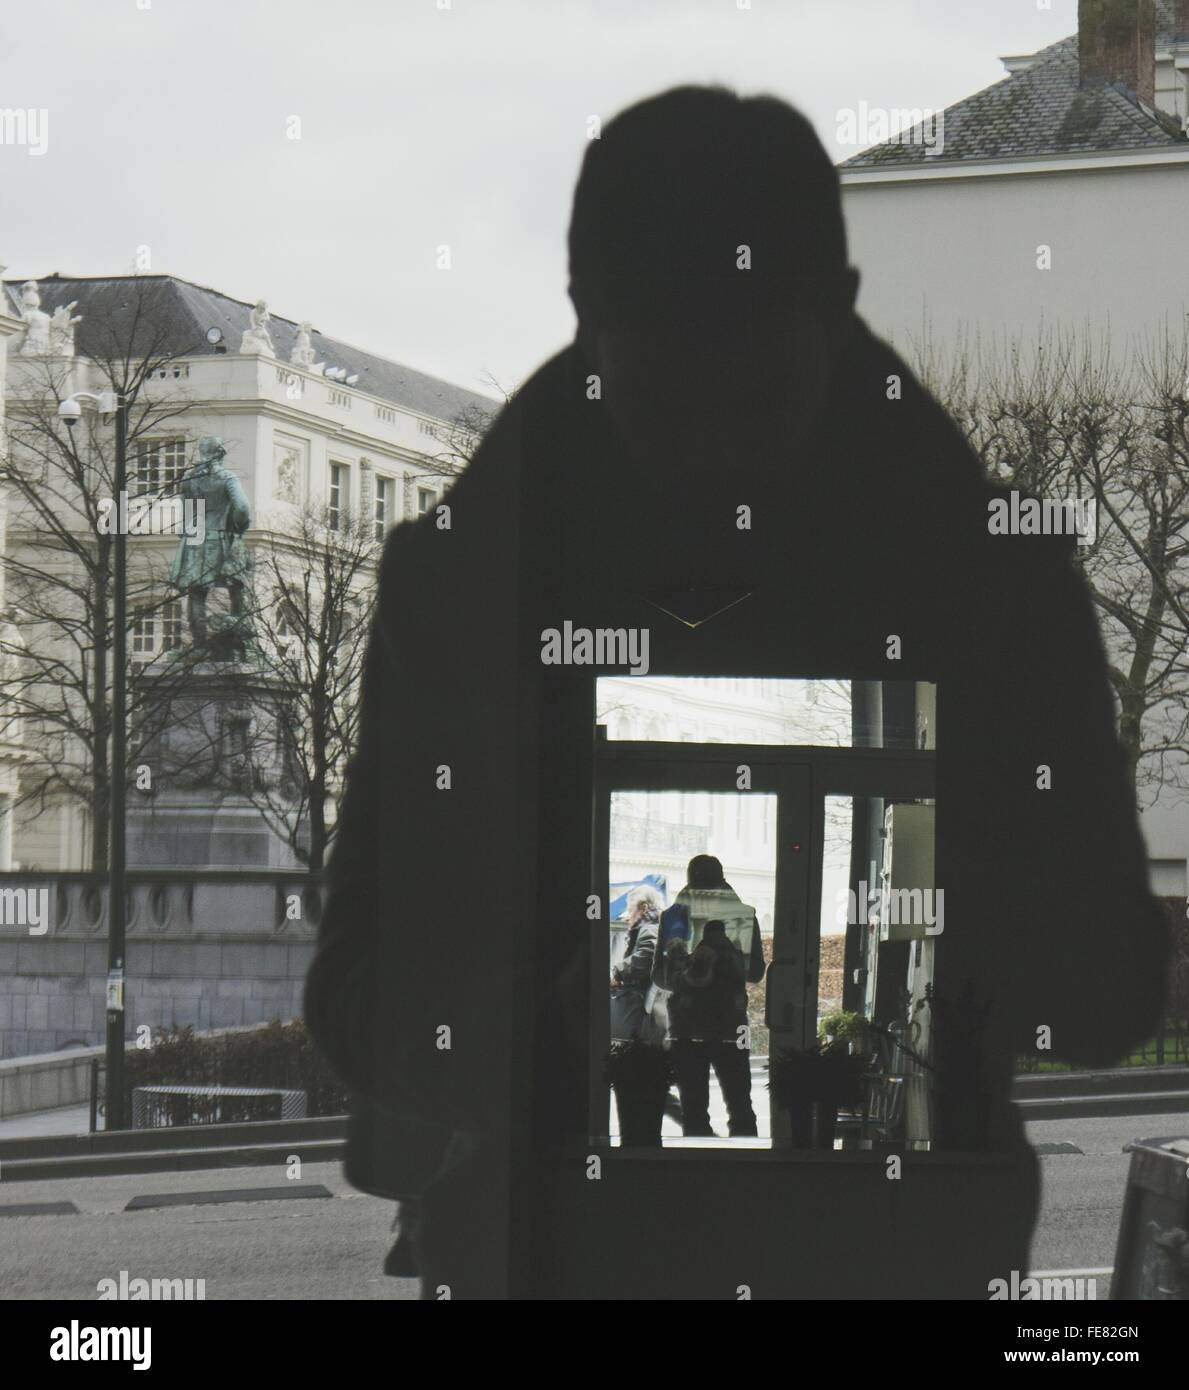 Reflection Of Silhouette Man On Glass Window In City Stock Photo